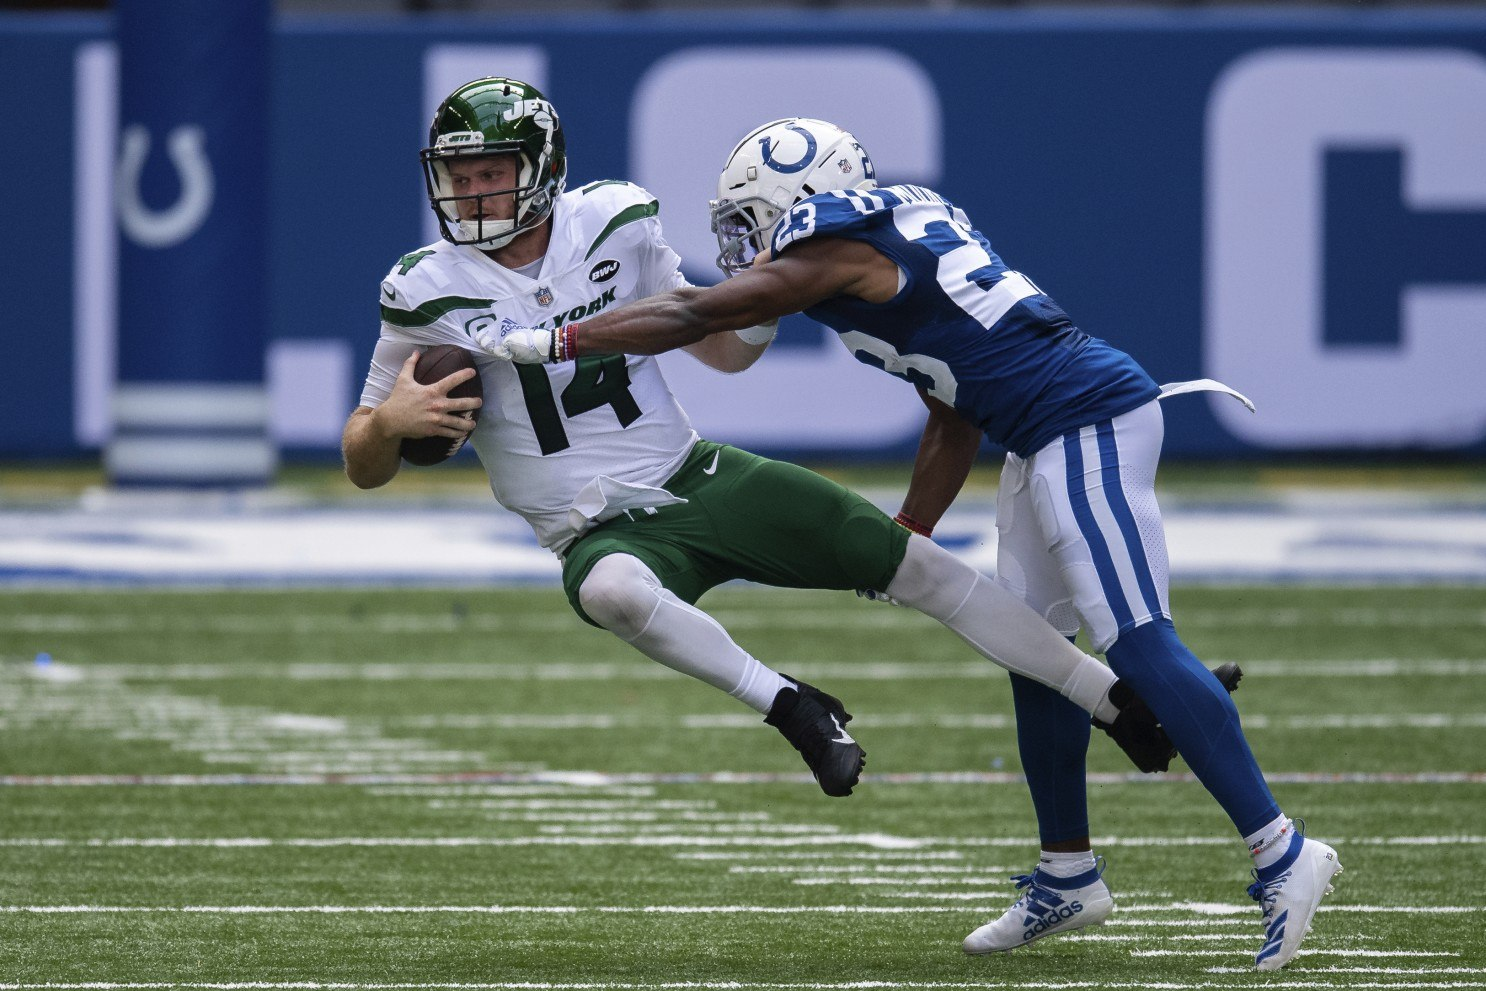 Sam Darnold winless NY Jets 0-16 New York Giants Atlanta Falcons